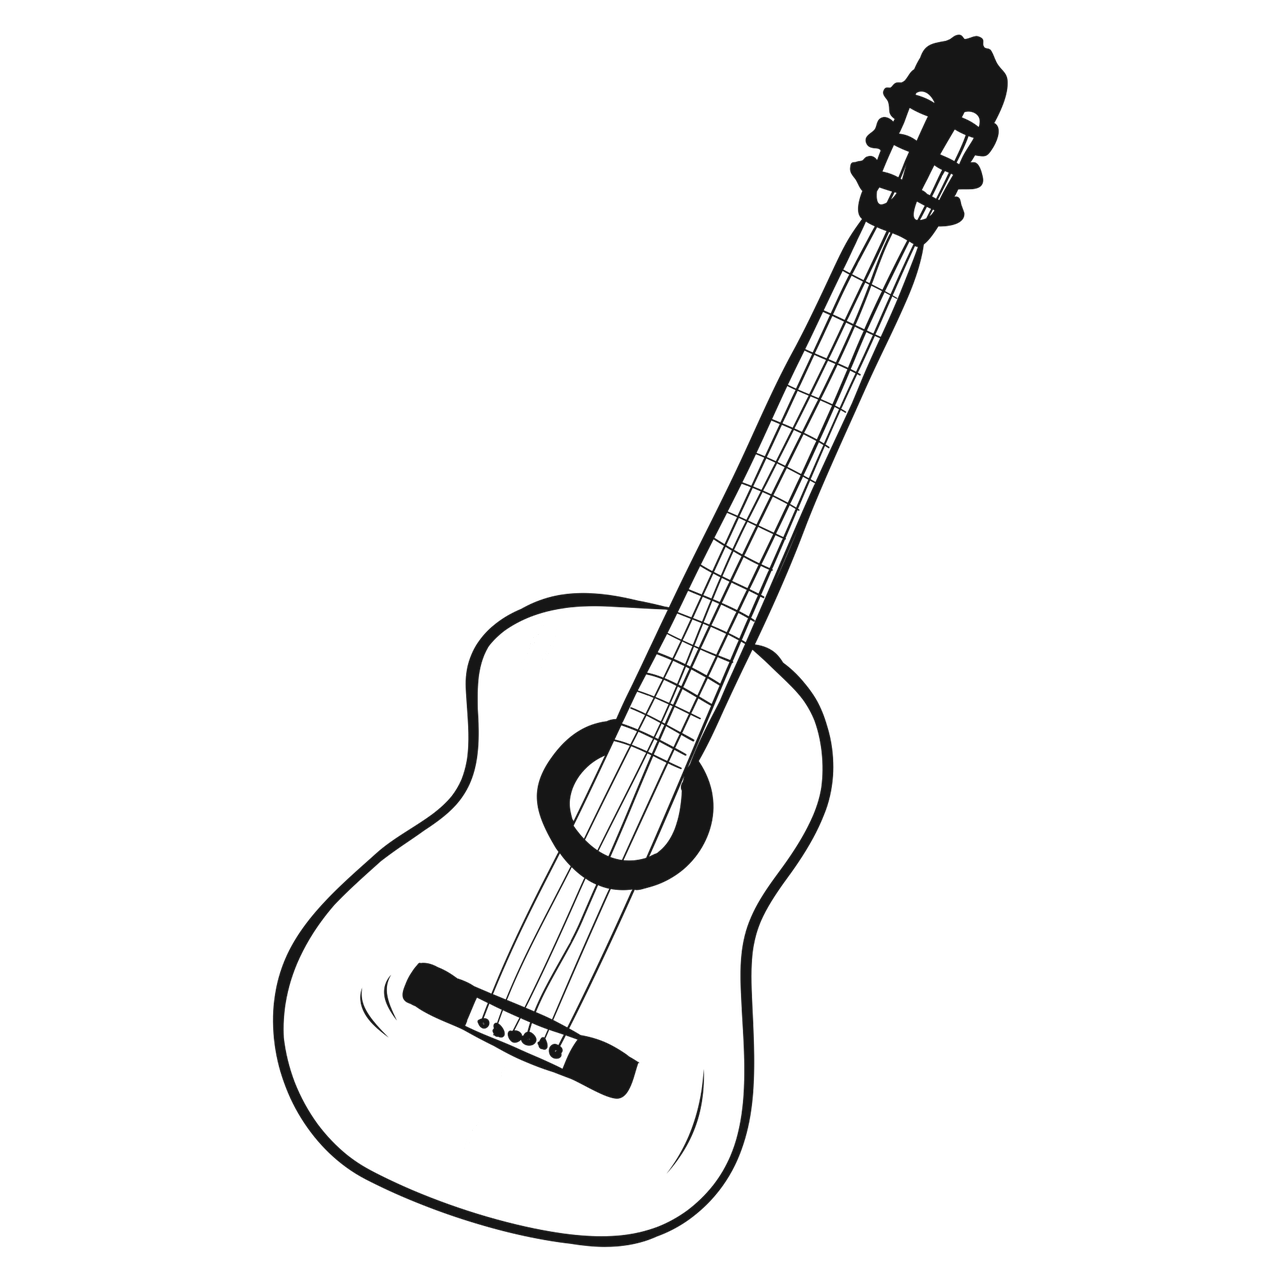 Guitar Drawing Music Free Image On Pixabay